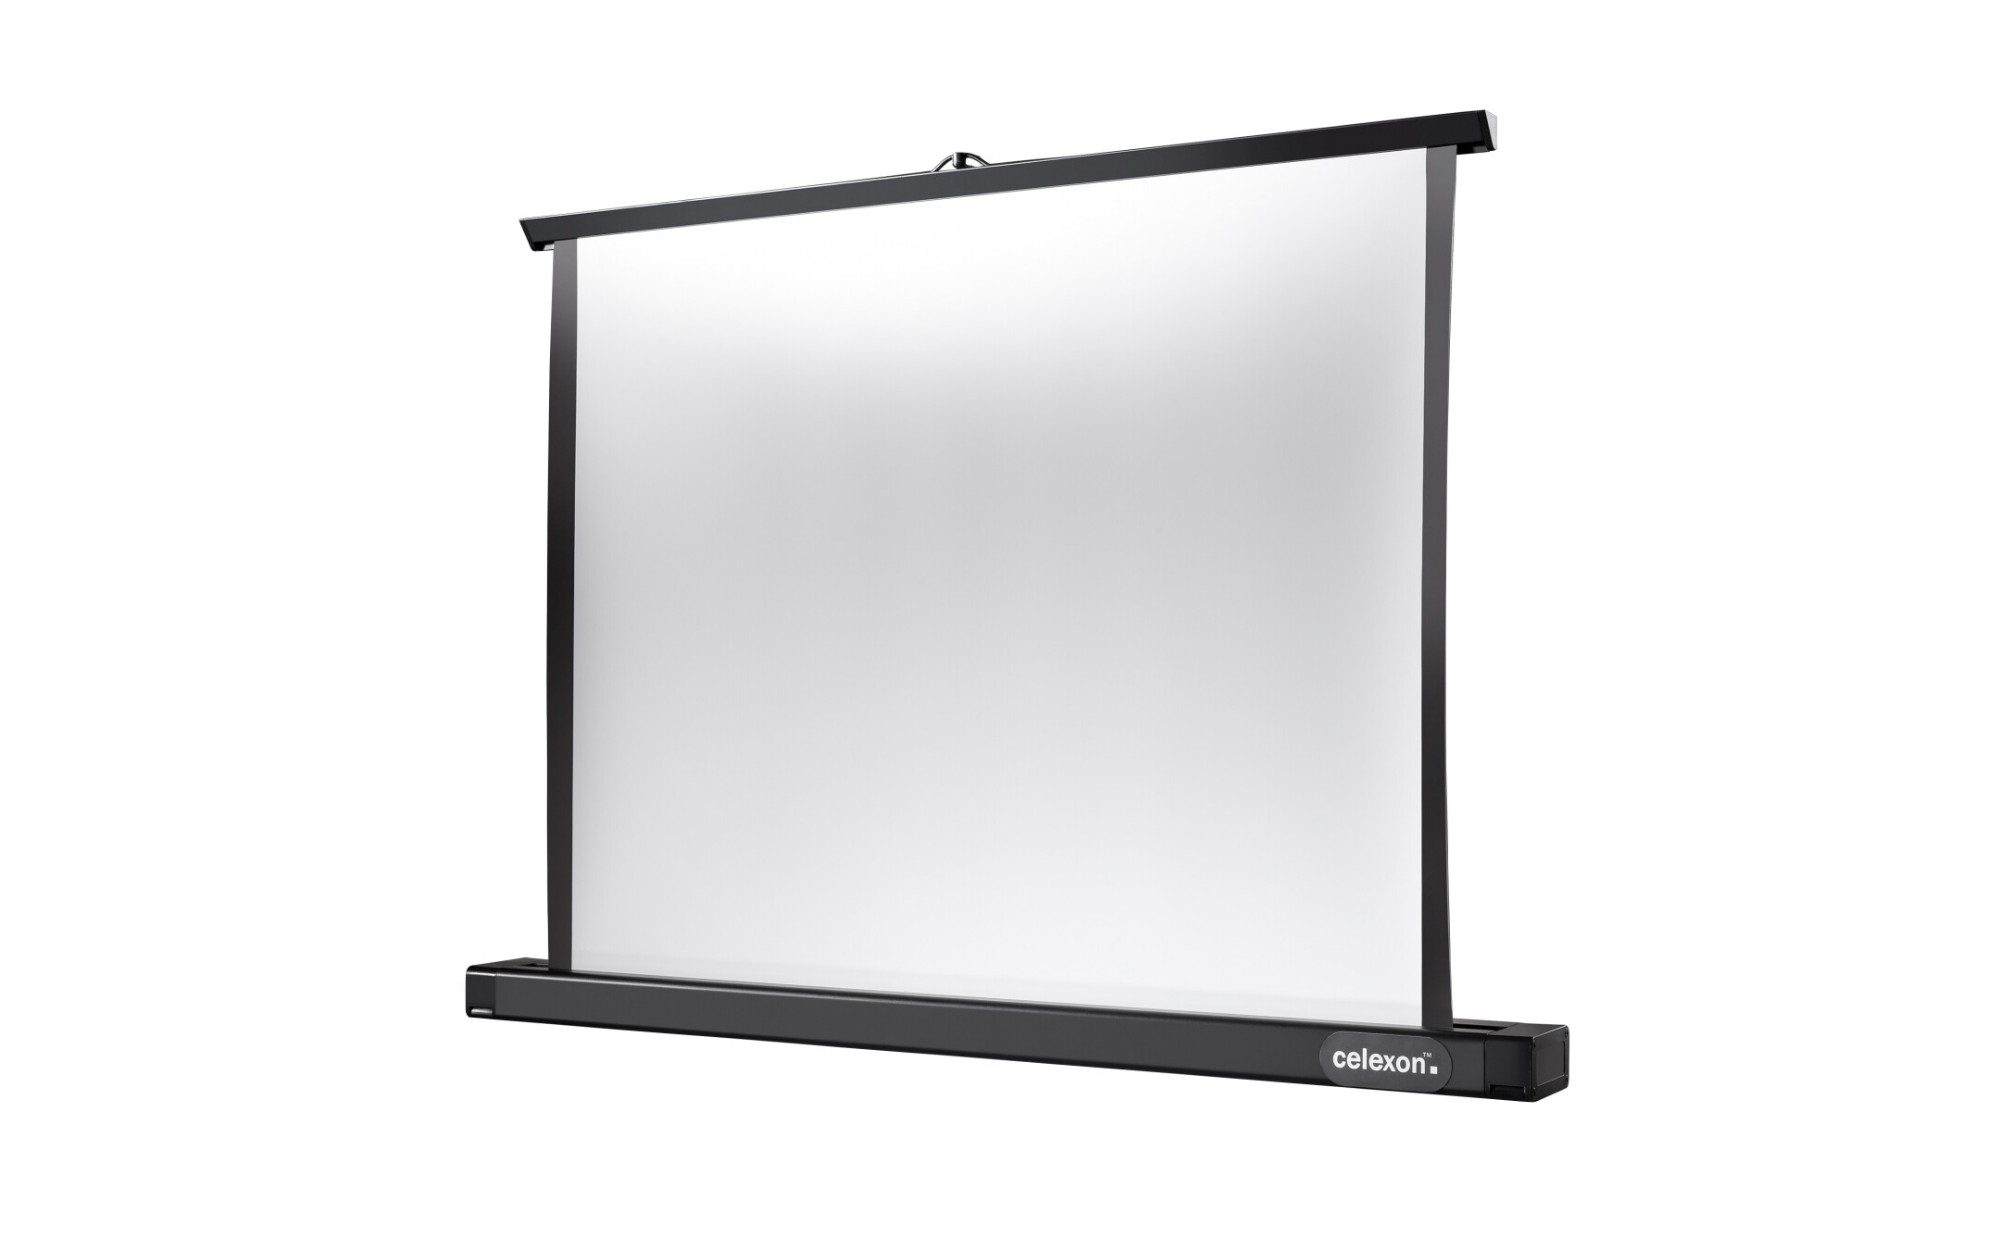 Celexon - Table Top Professional - 111cm x 62cm - Super Portable Projector Screen